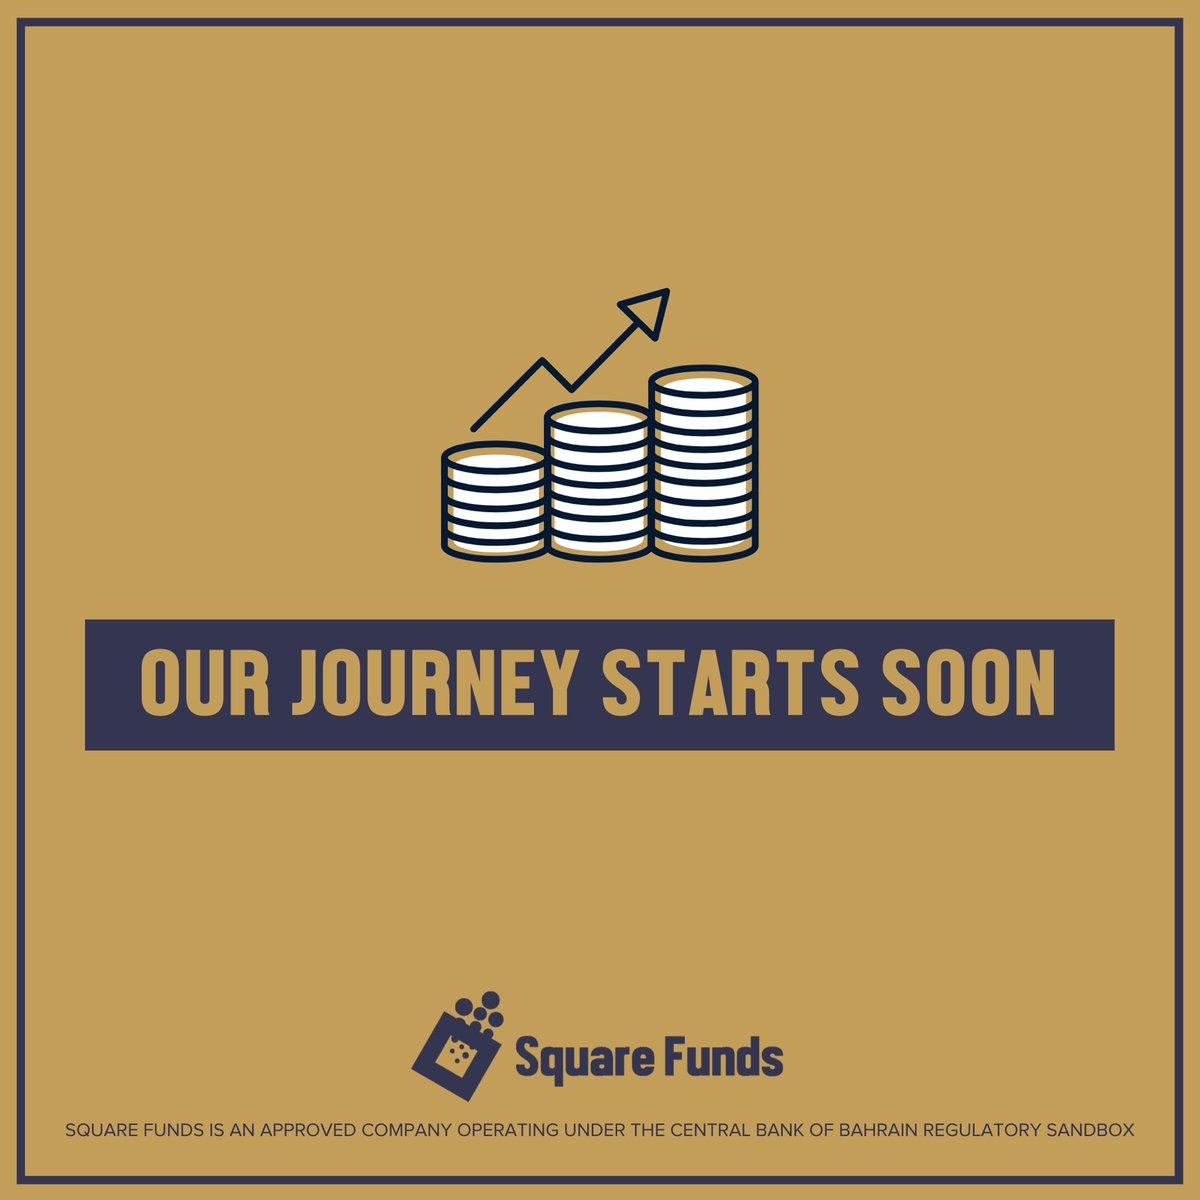 We can't wait to share this journey with you! #BahrainFintech #Bahrain https://t.co/MiwOmZg3yz